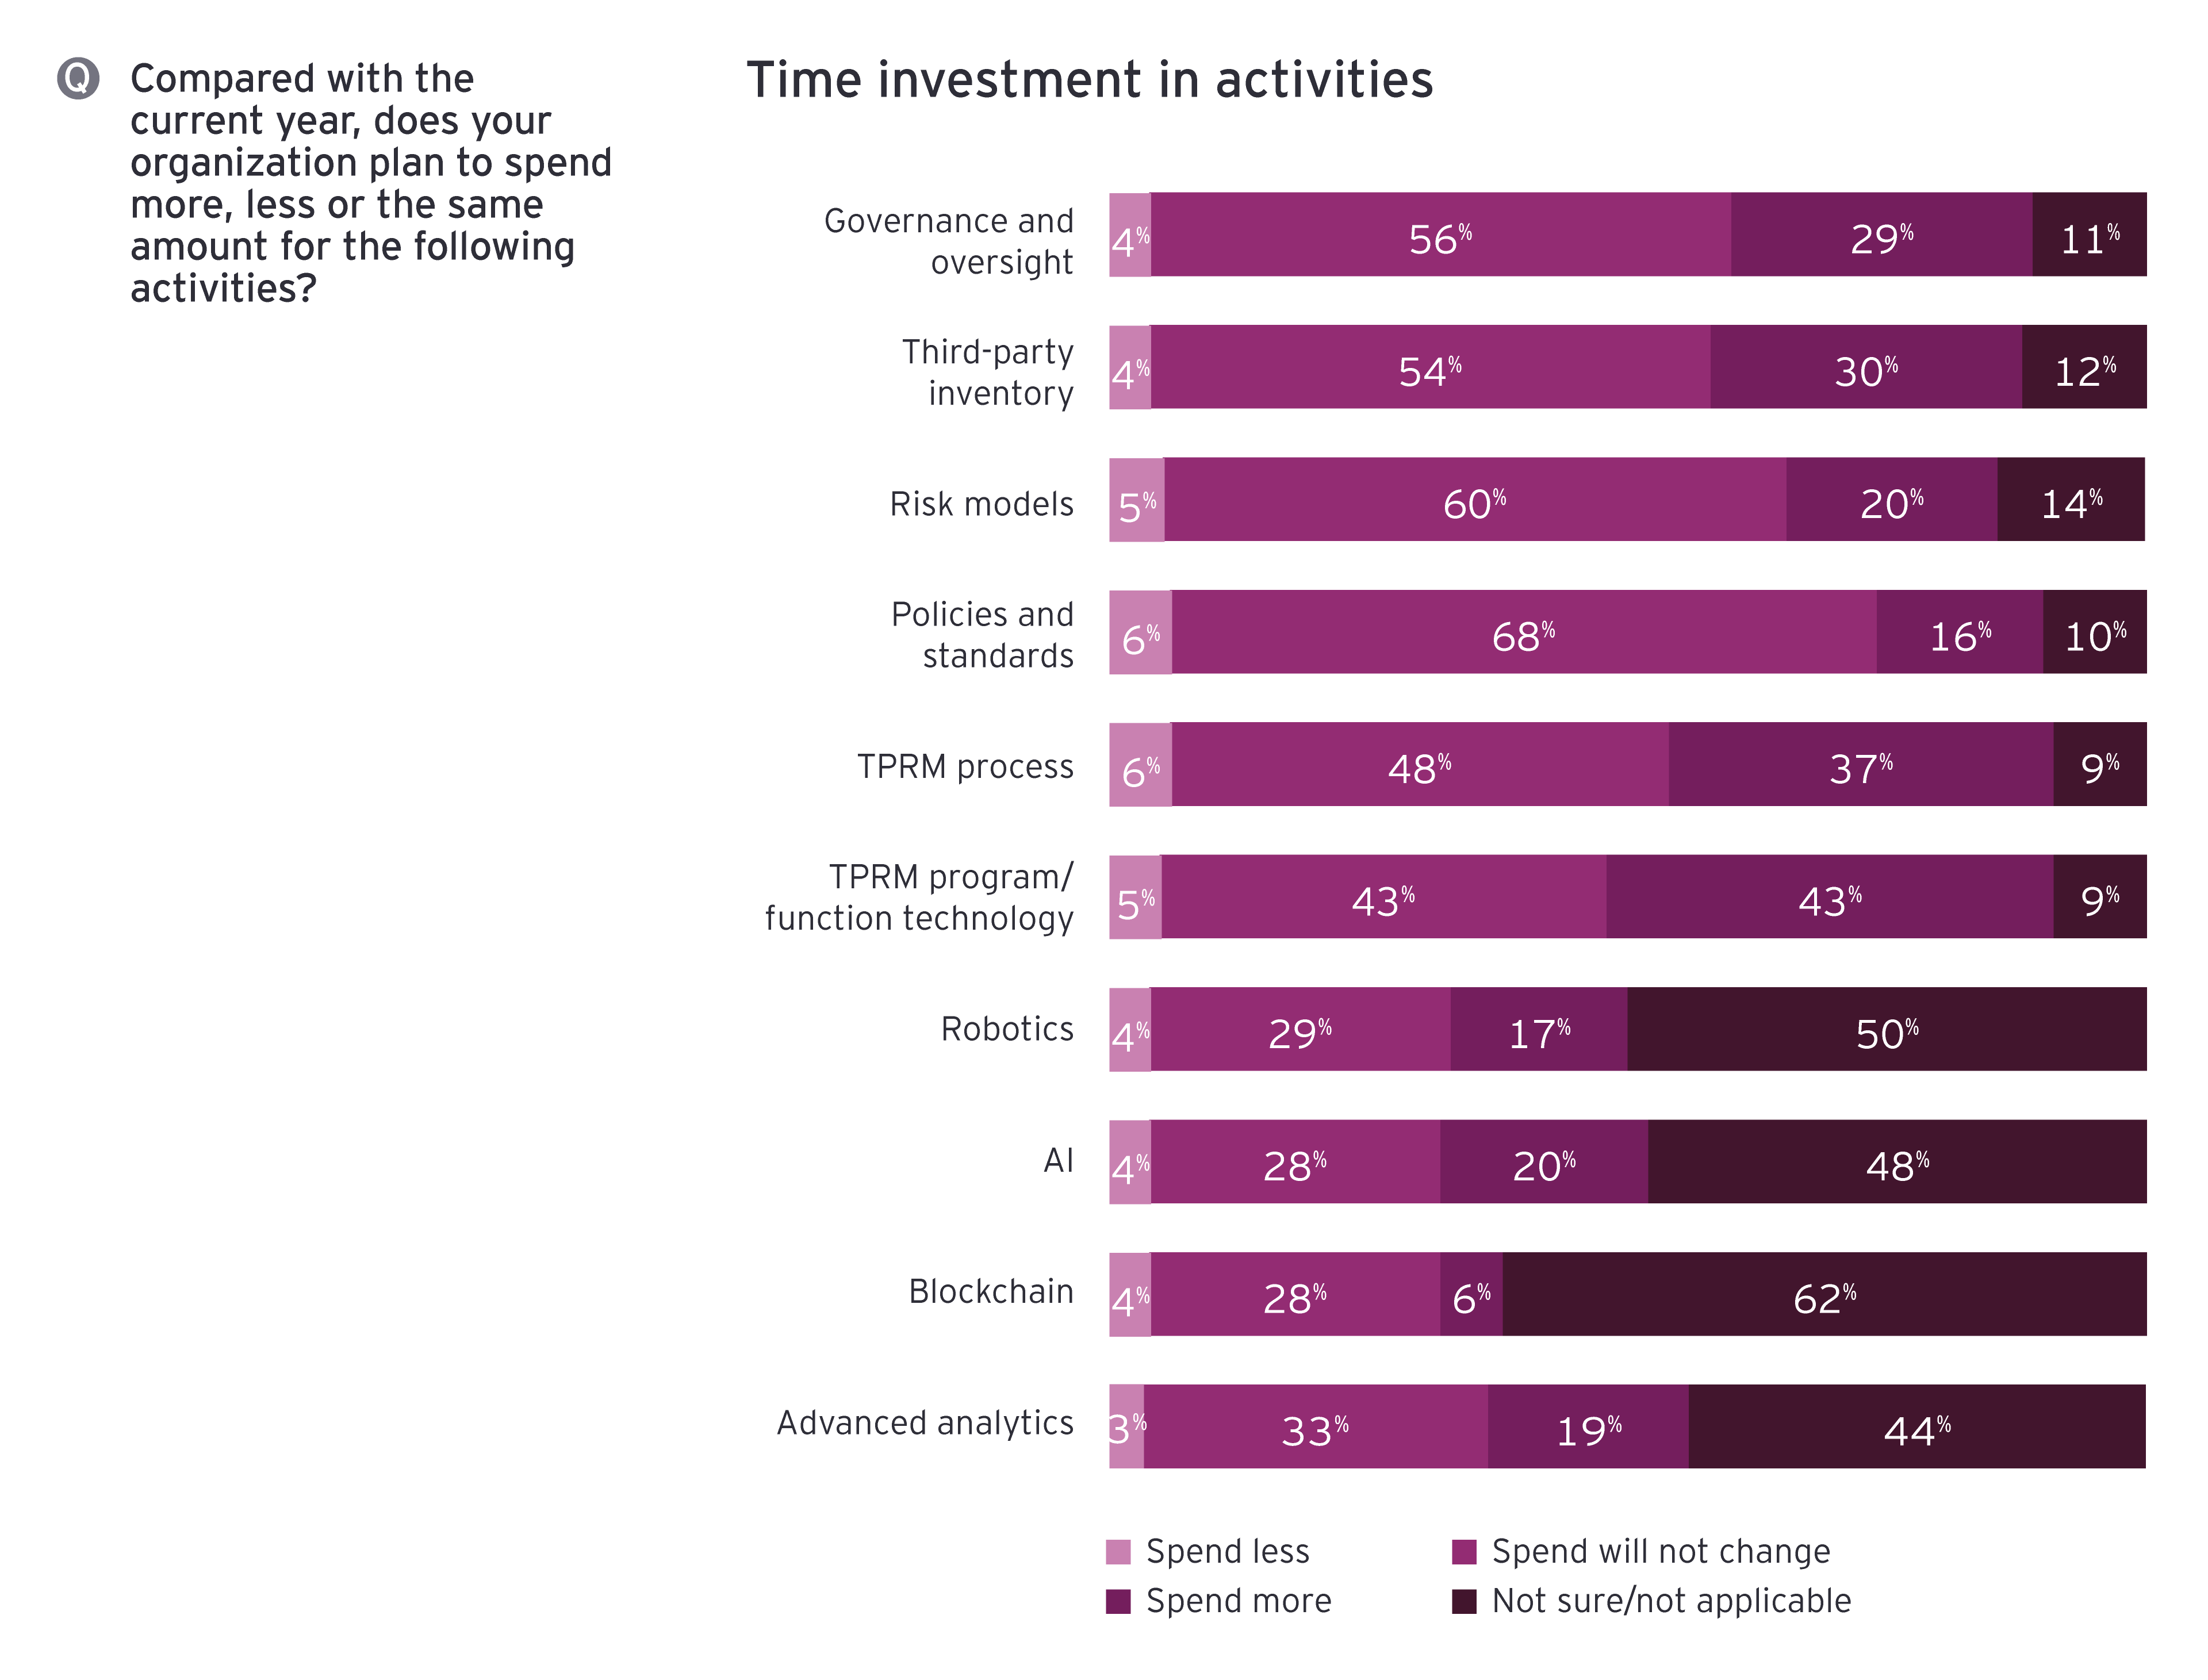 Time investment in activities